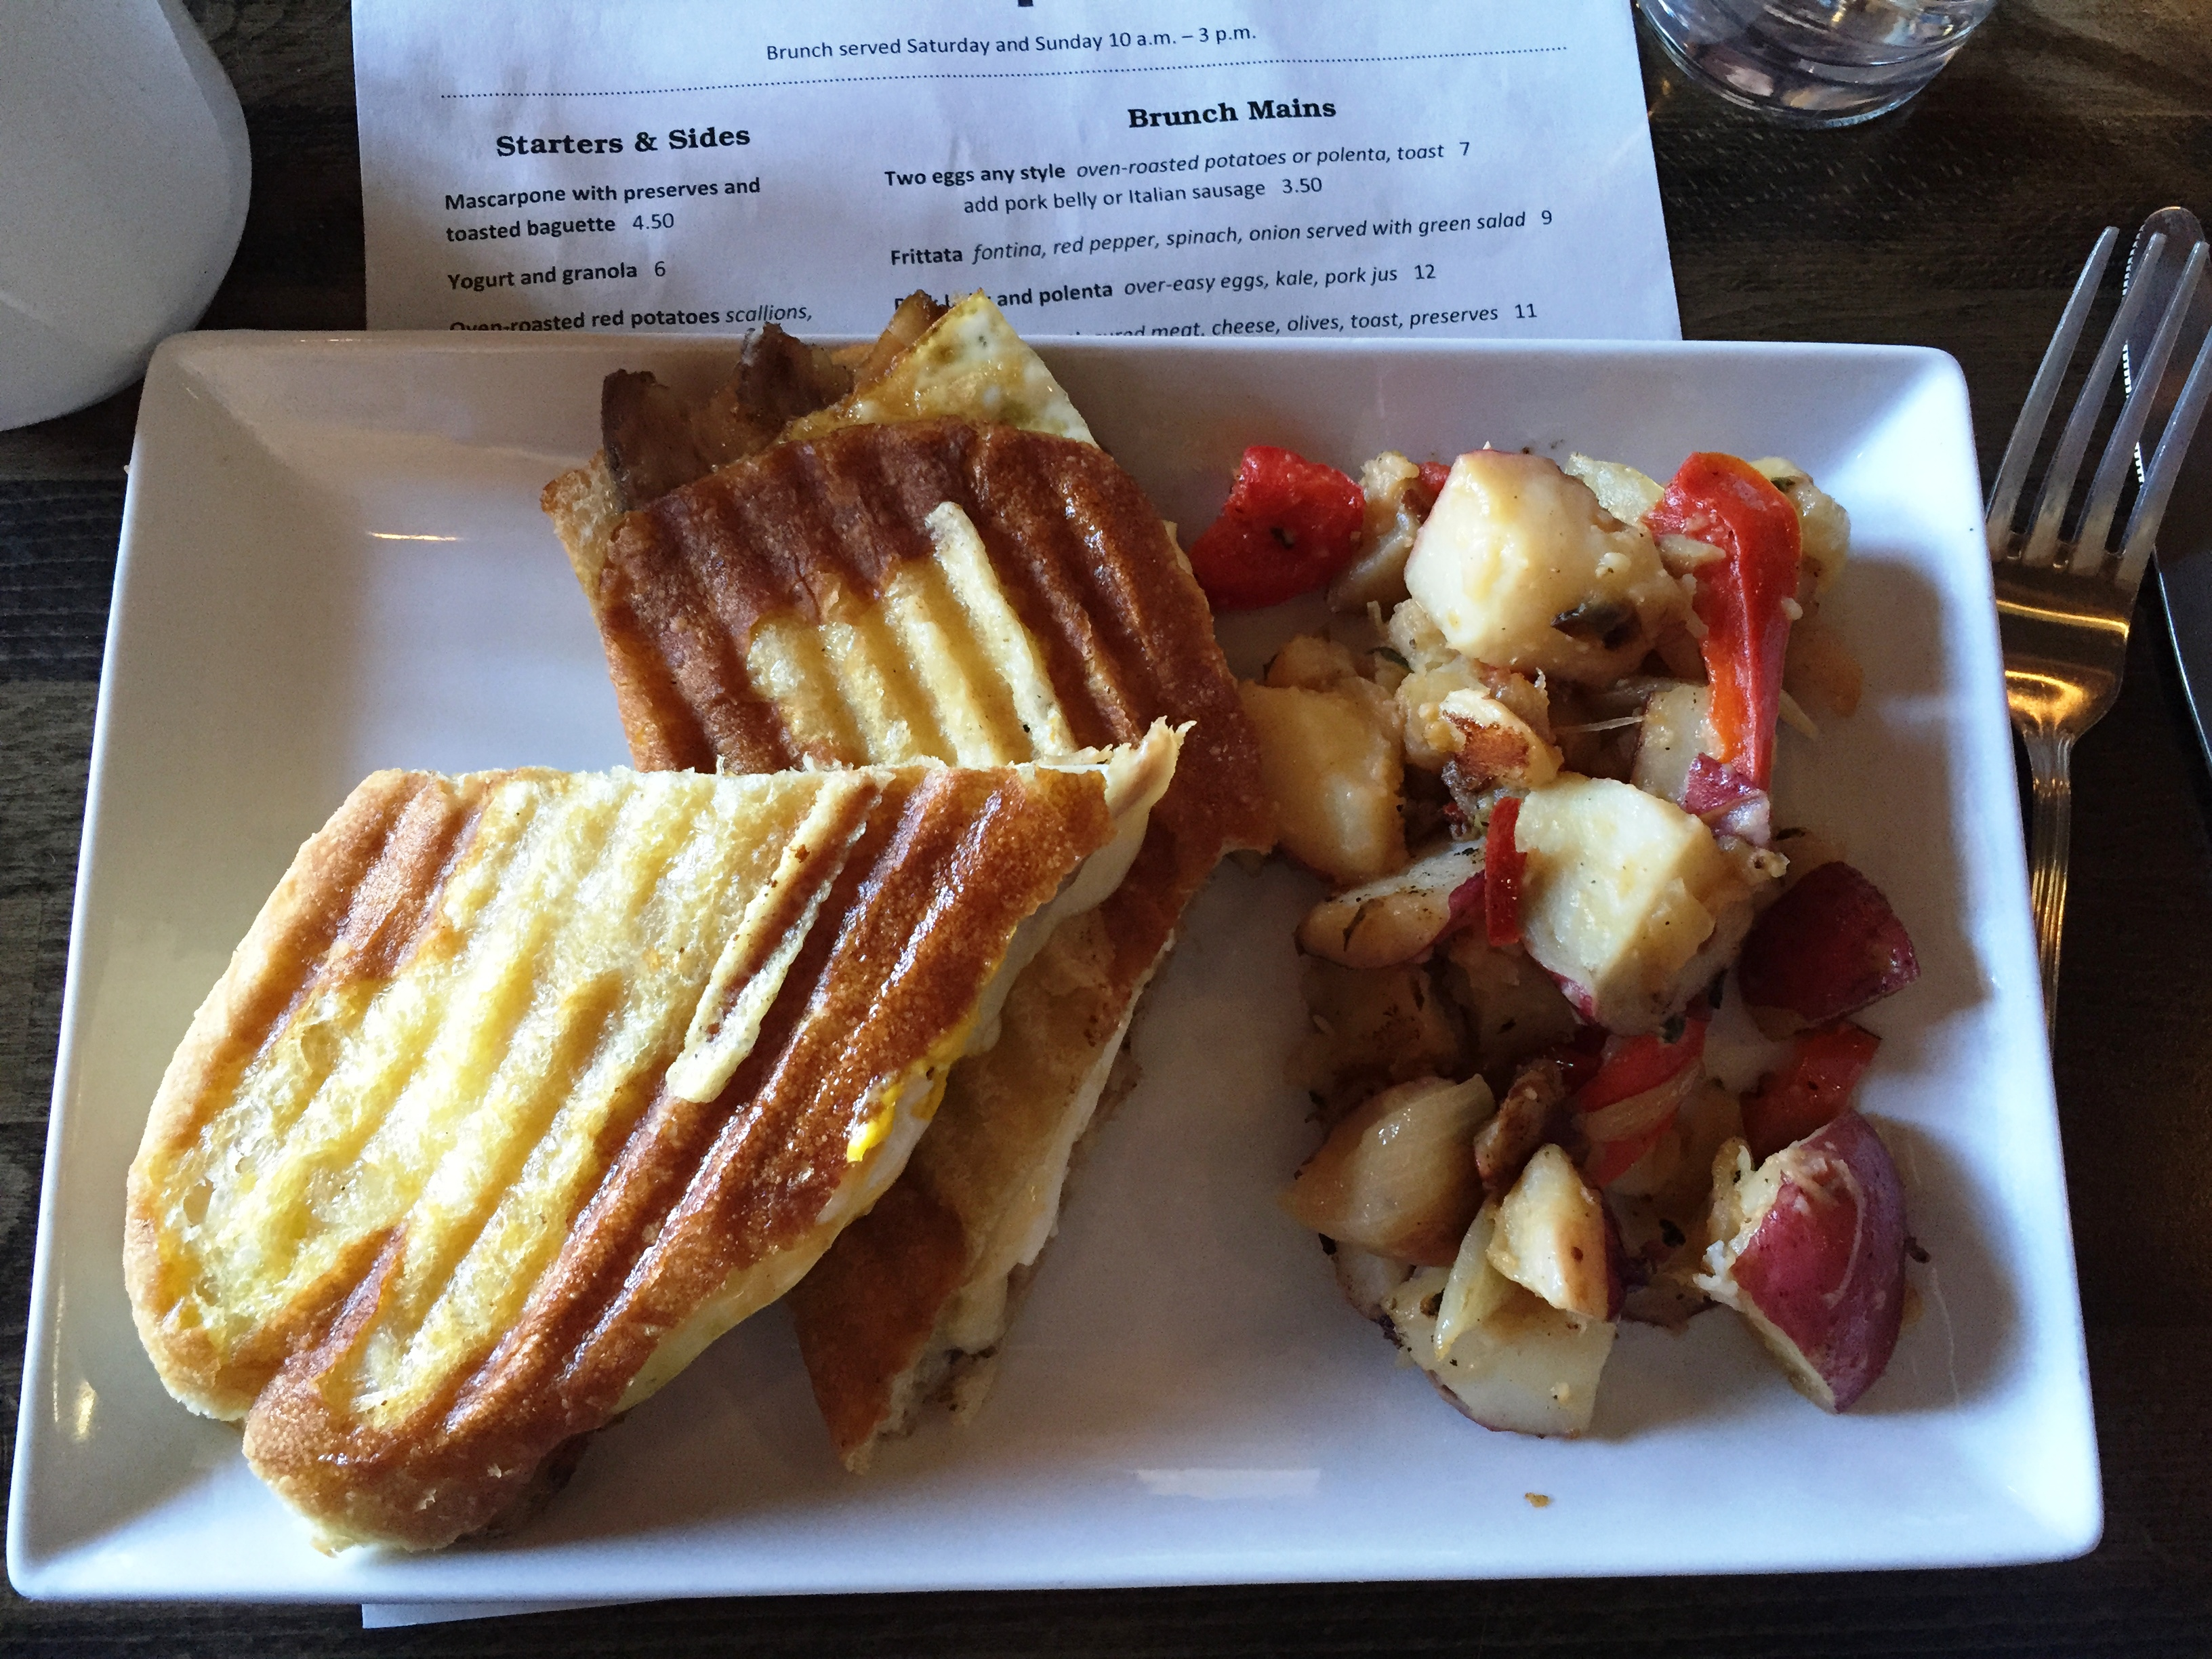 Pork belly panini with a side of roasted potatoes. (Photo: Lanna Nguyen/DC on Heels)